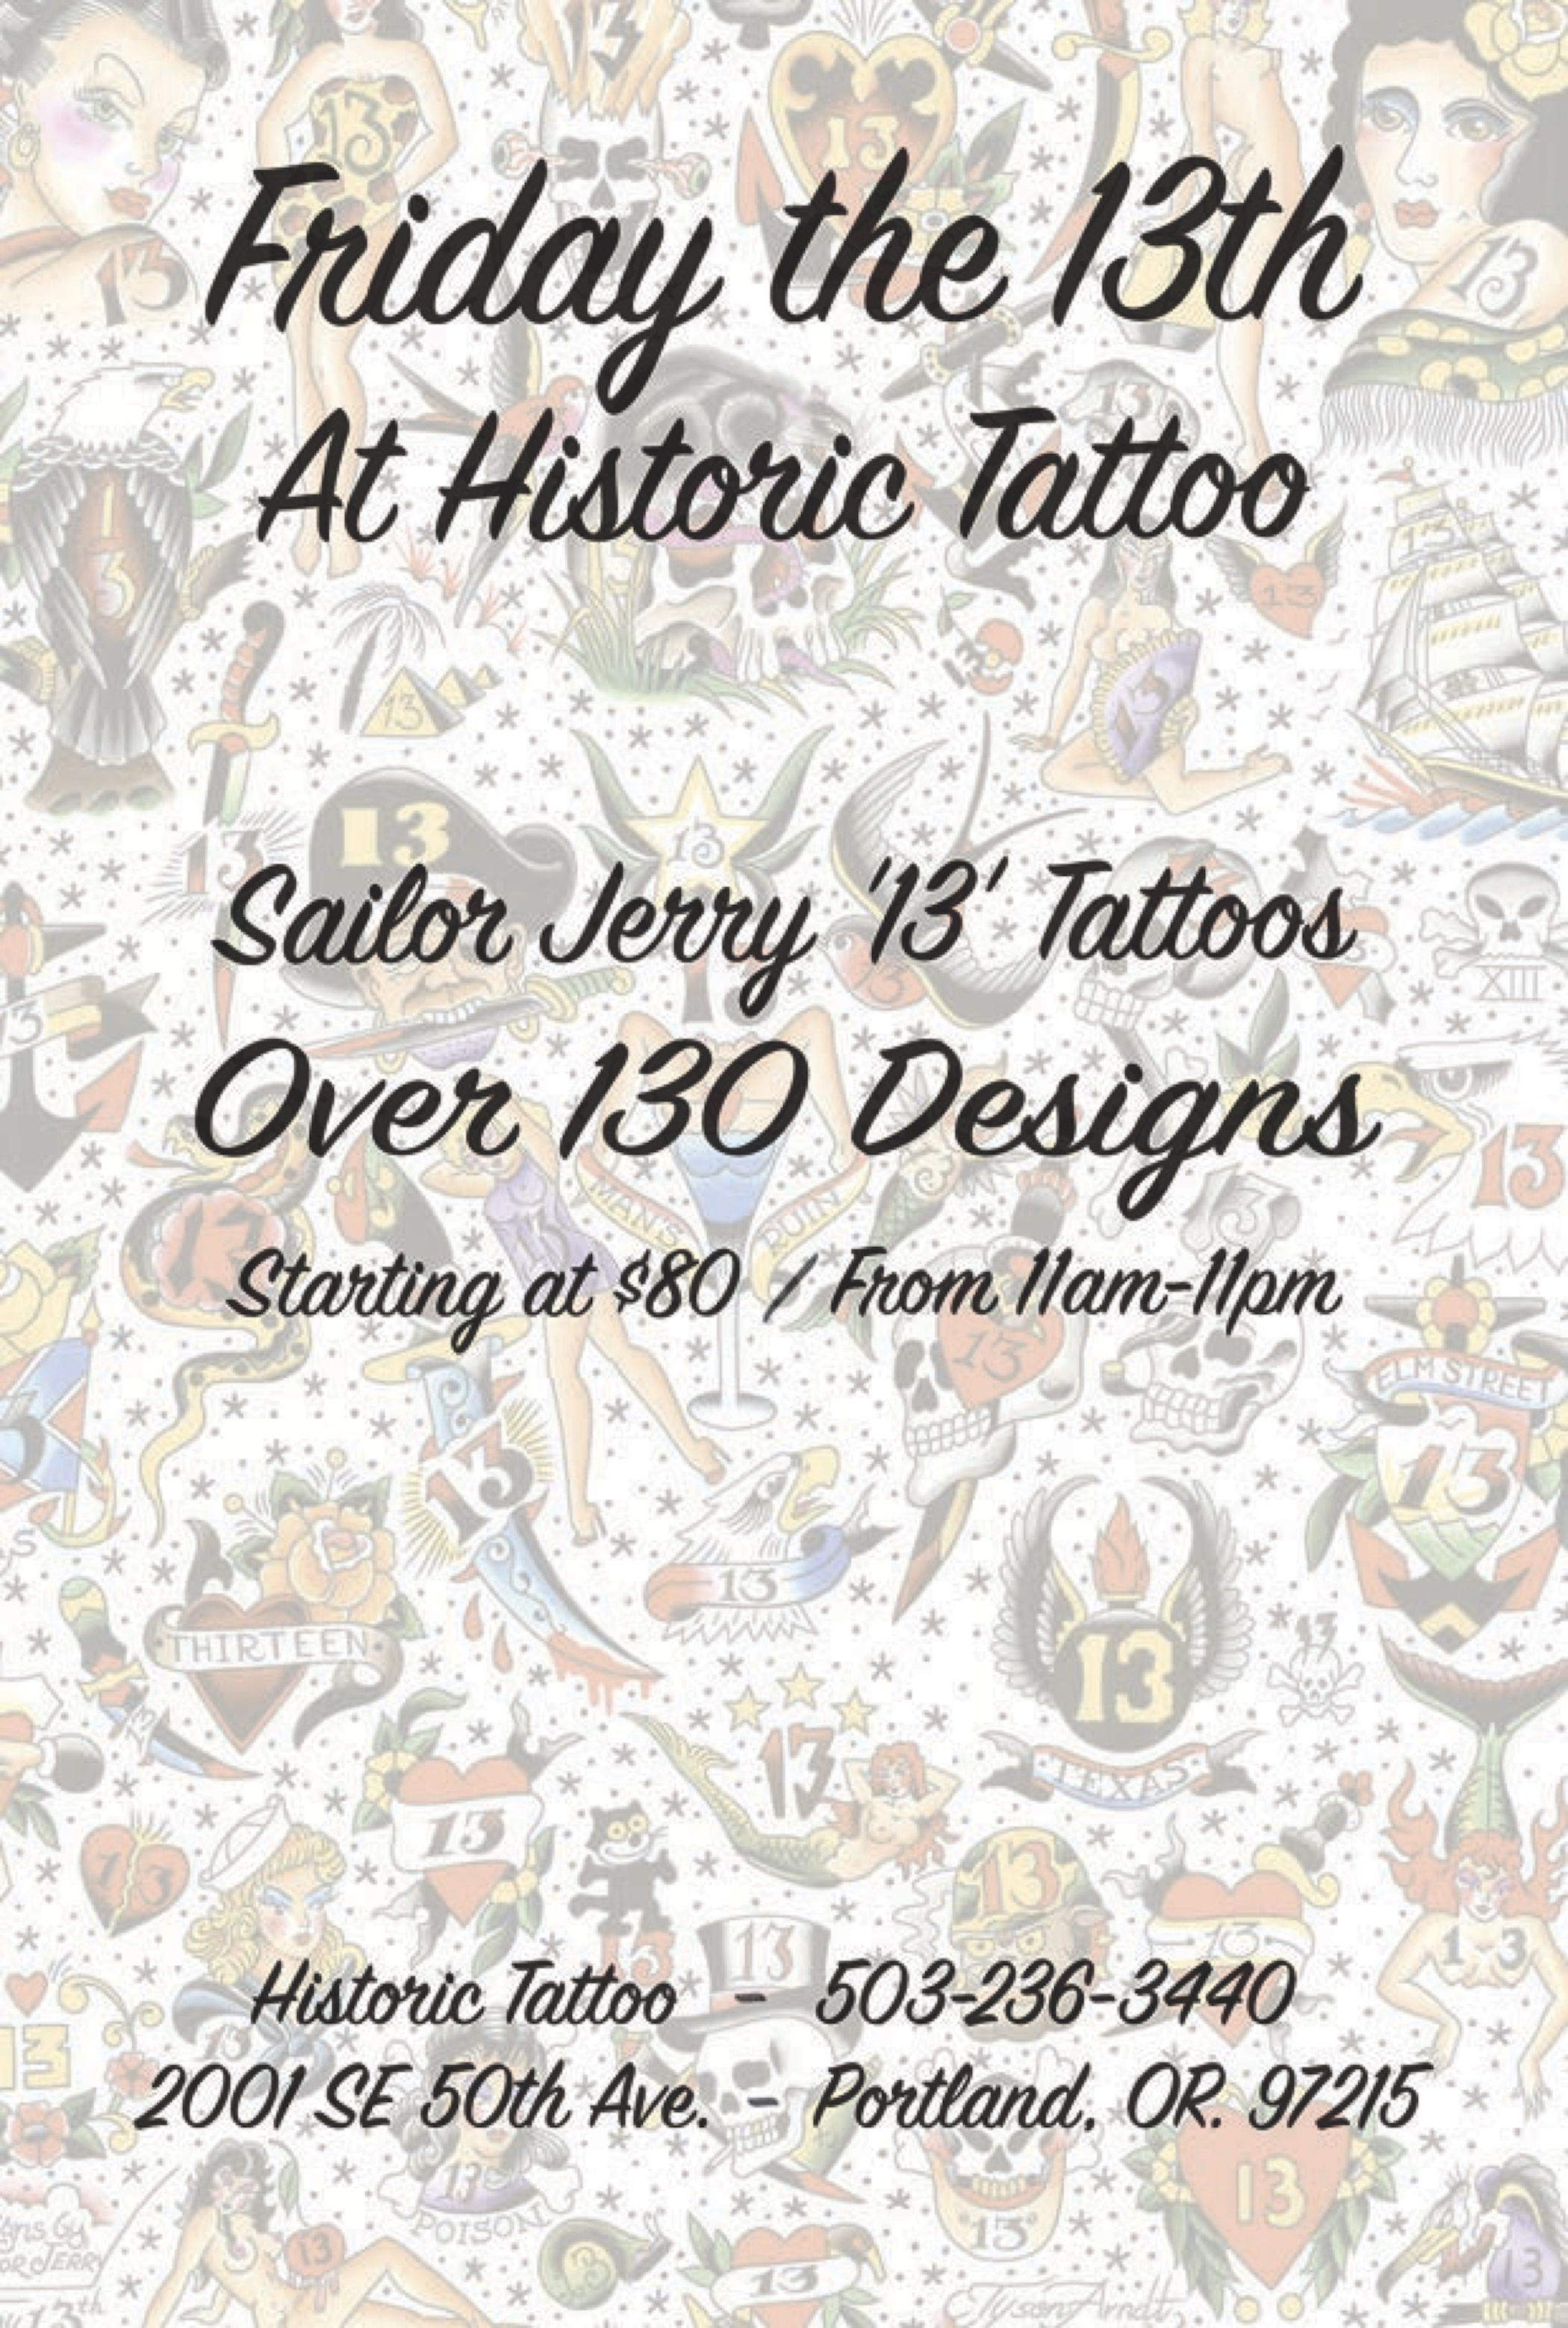 Tyson Arndt Sailor Jerry